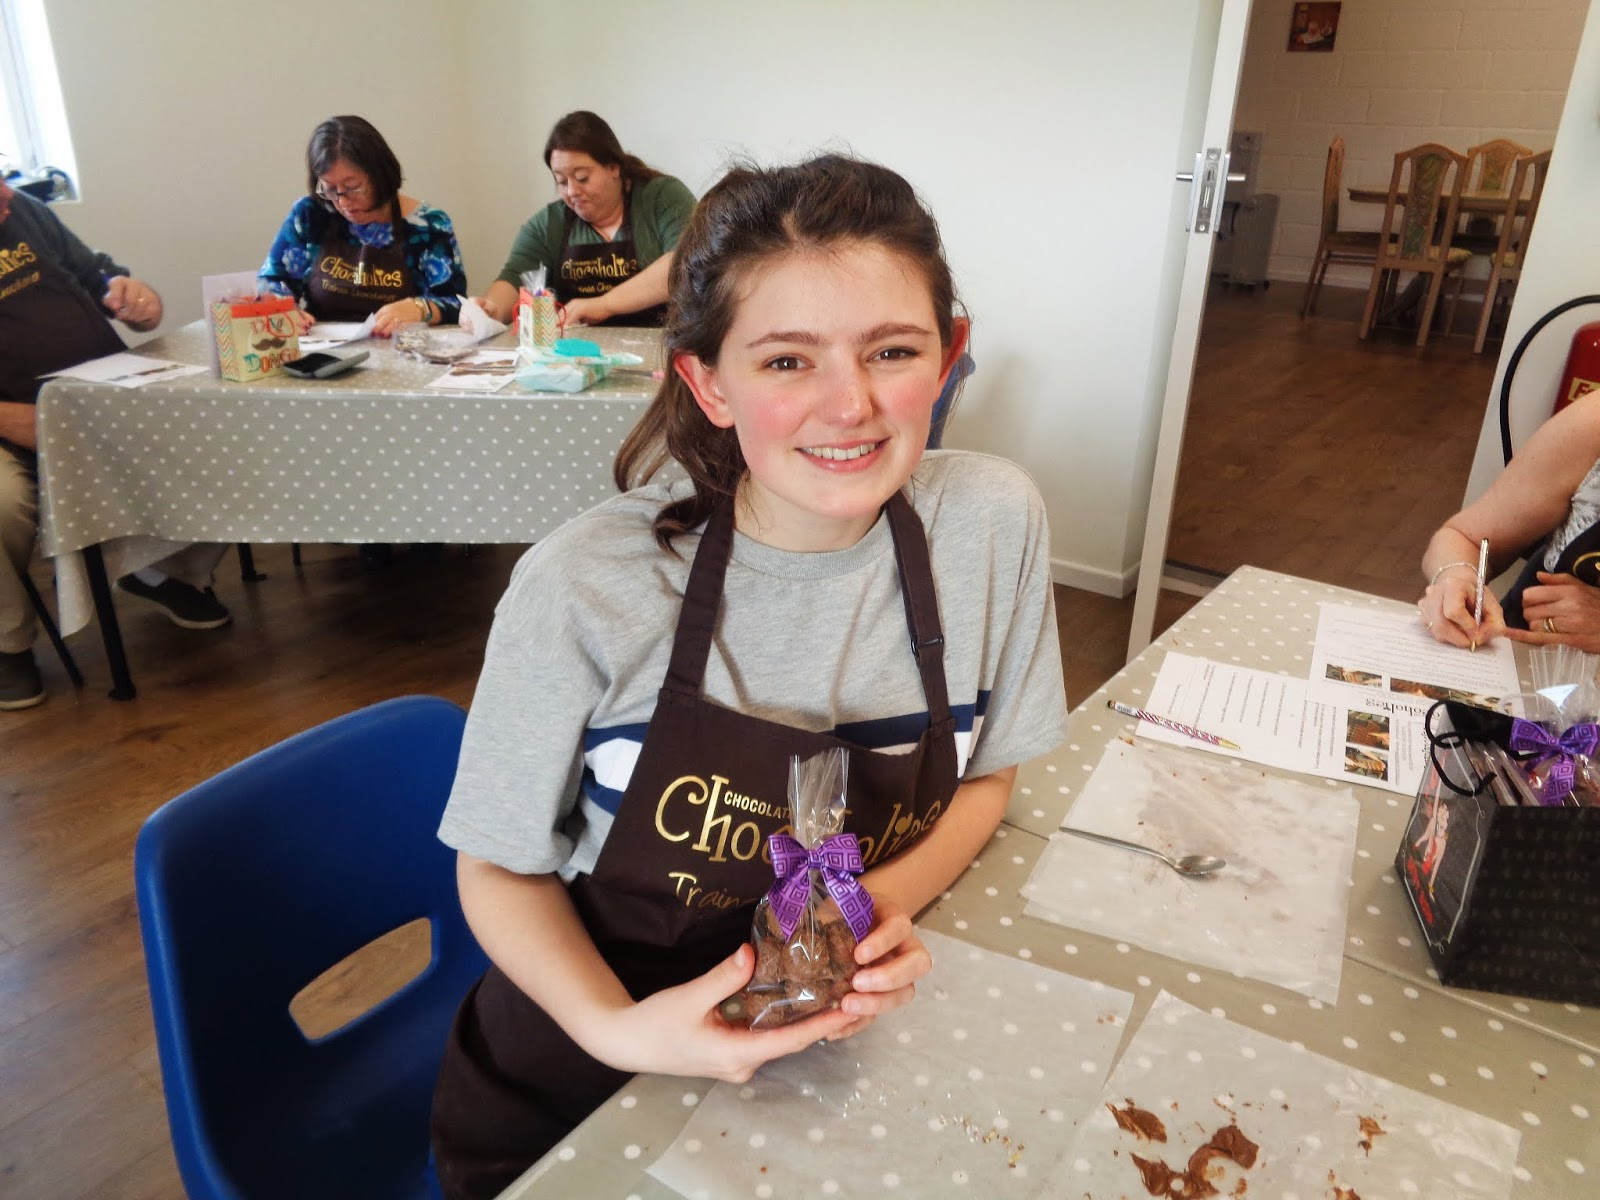 The Ultimate Chocolate Workshop at Chocolates for Chocoholics, Hurst